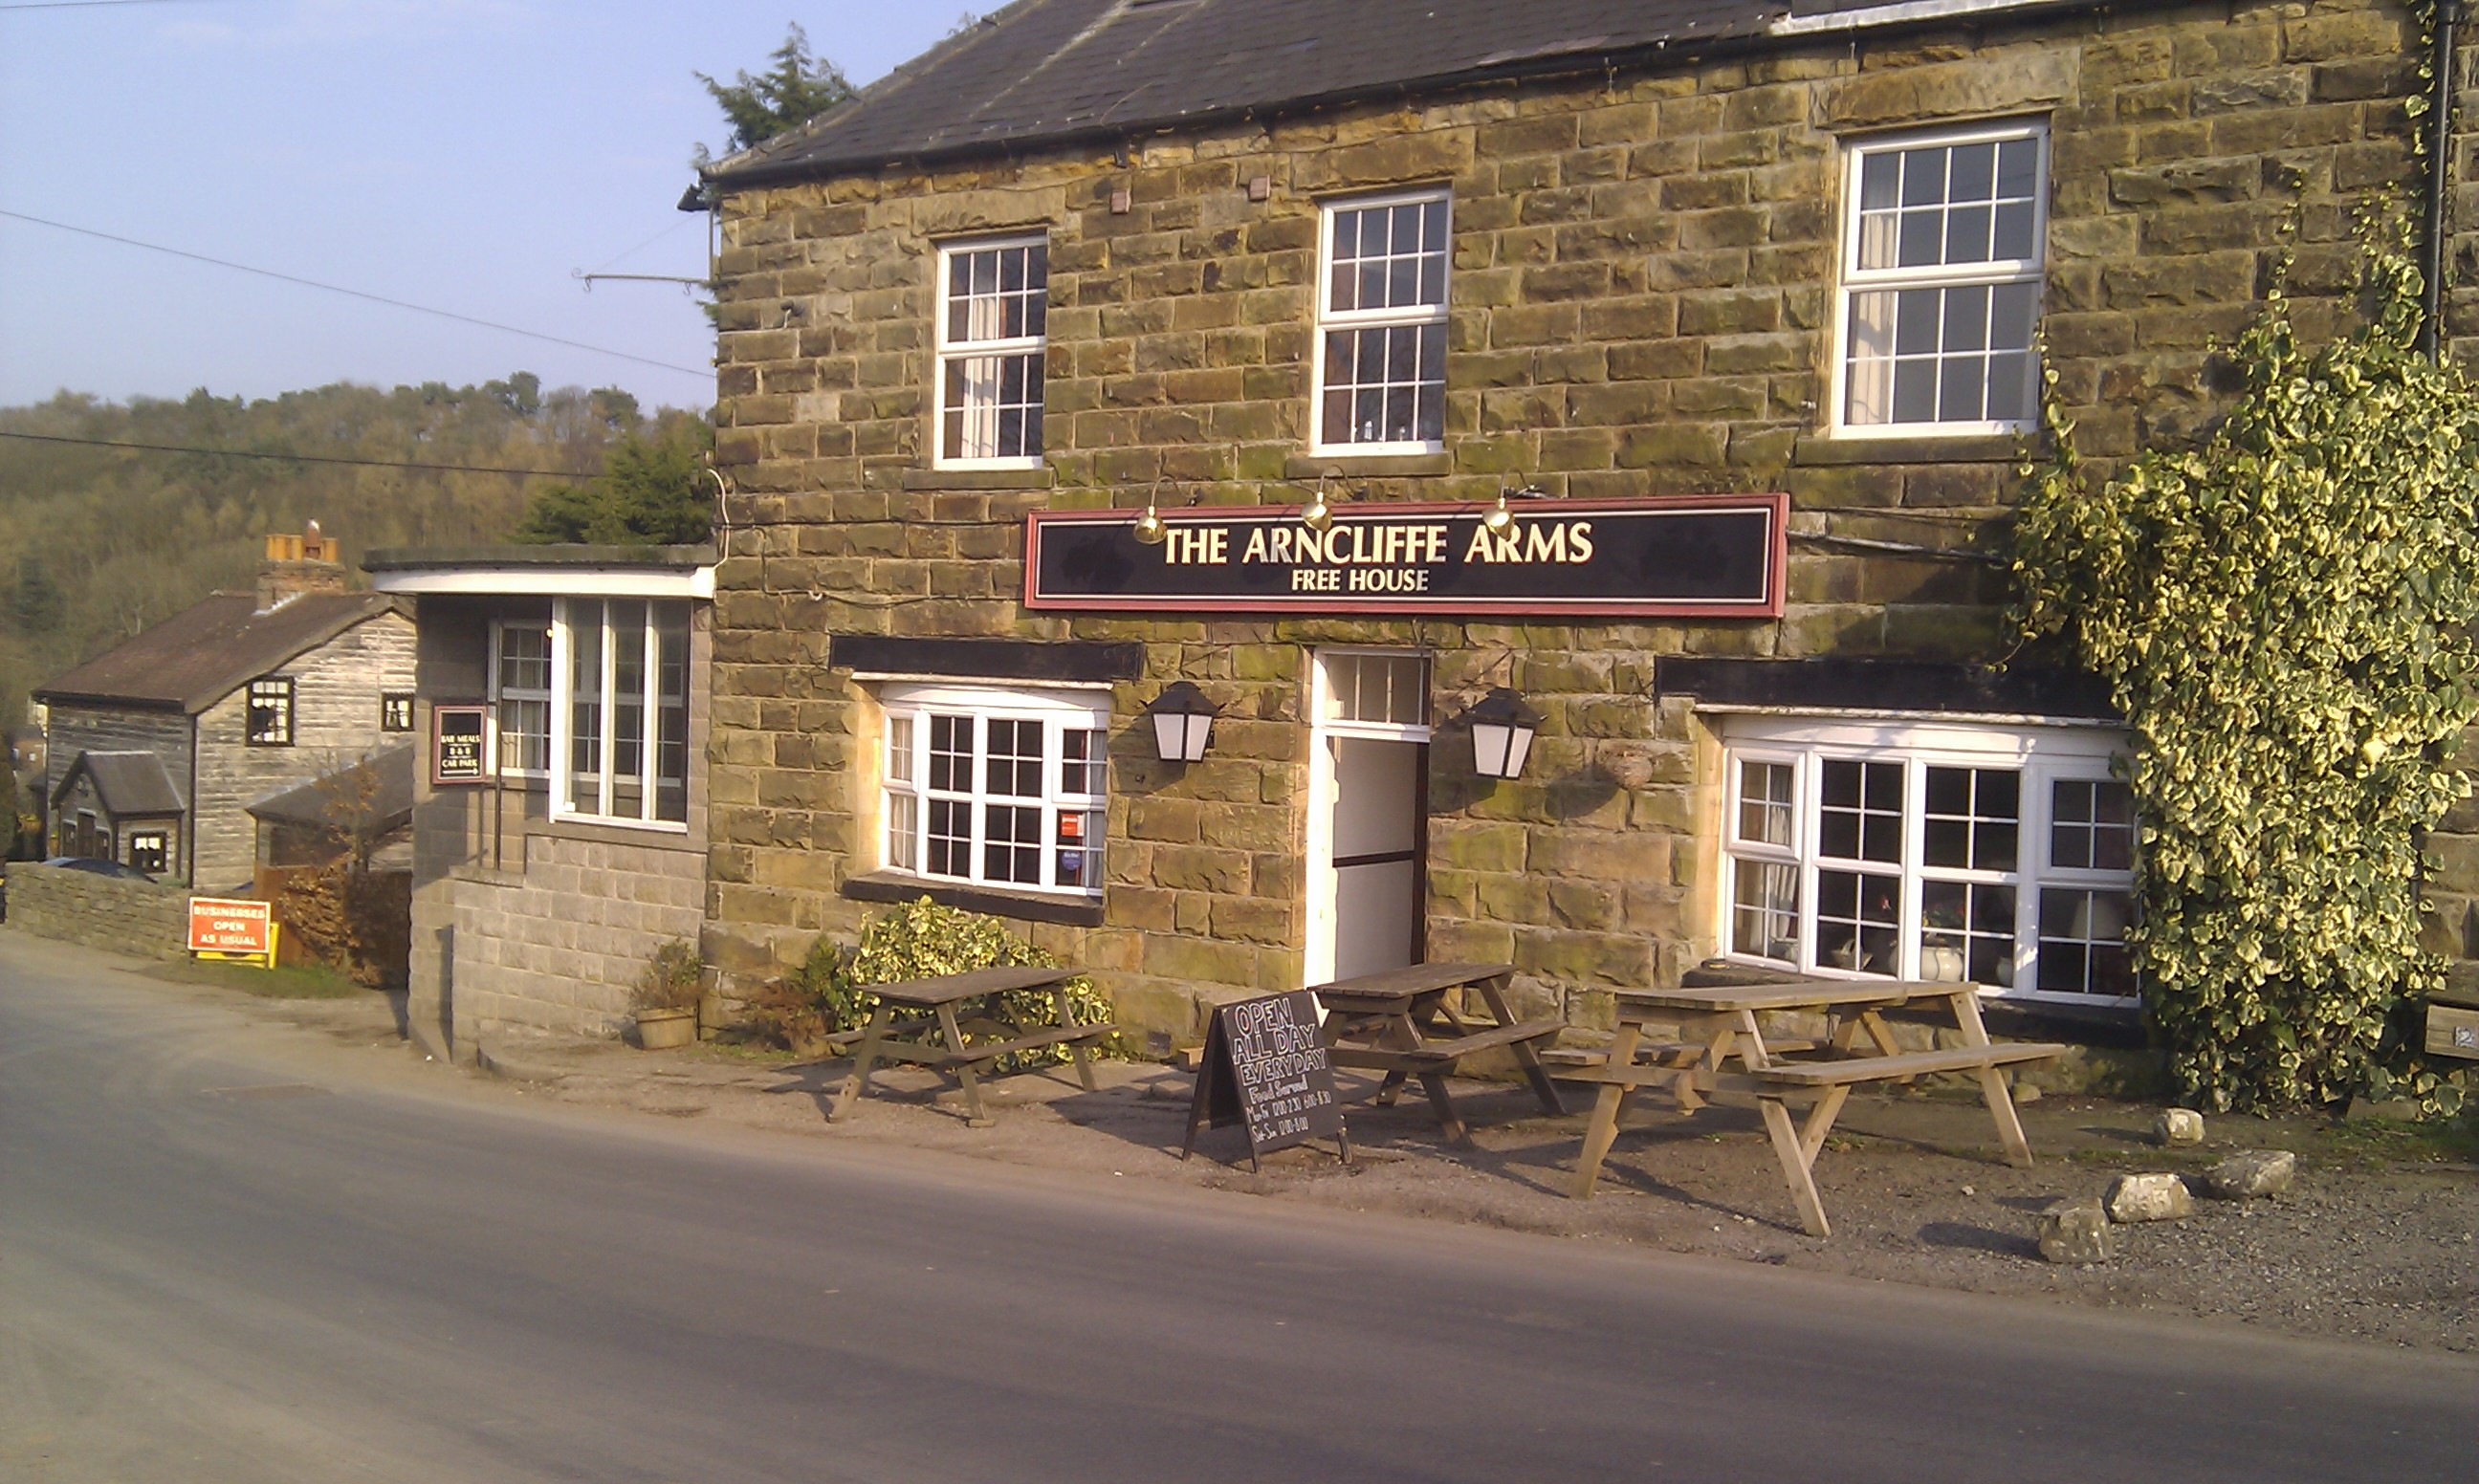 Arncliffe Arms, Glaisdale